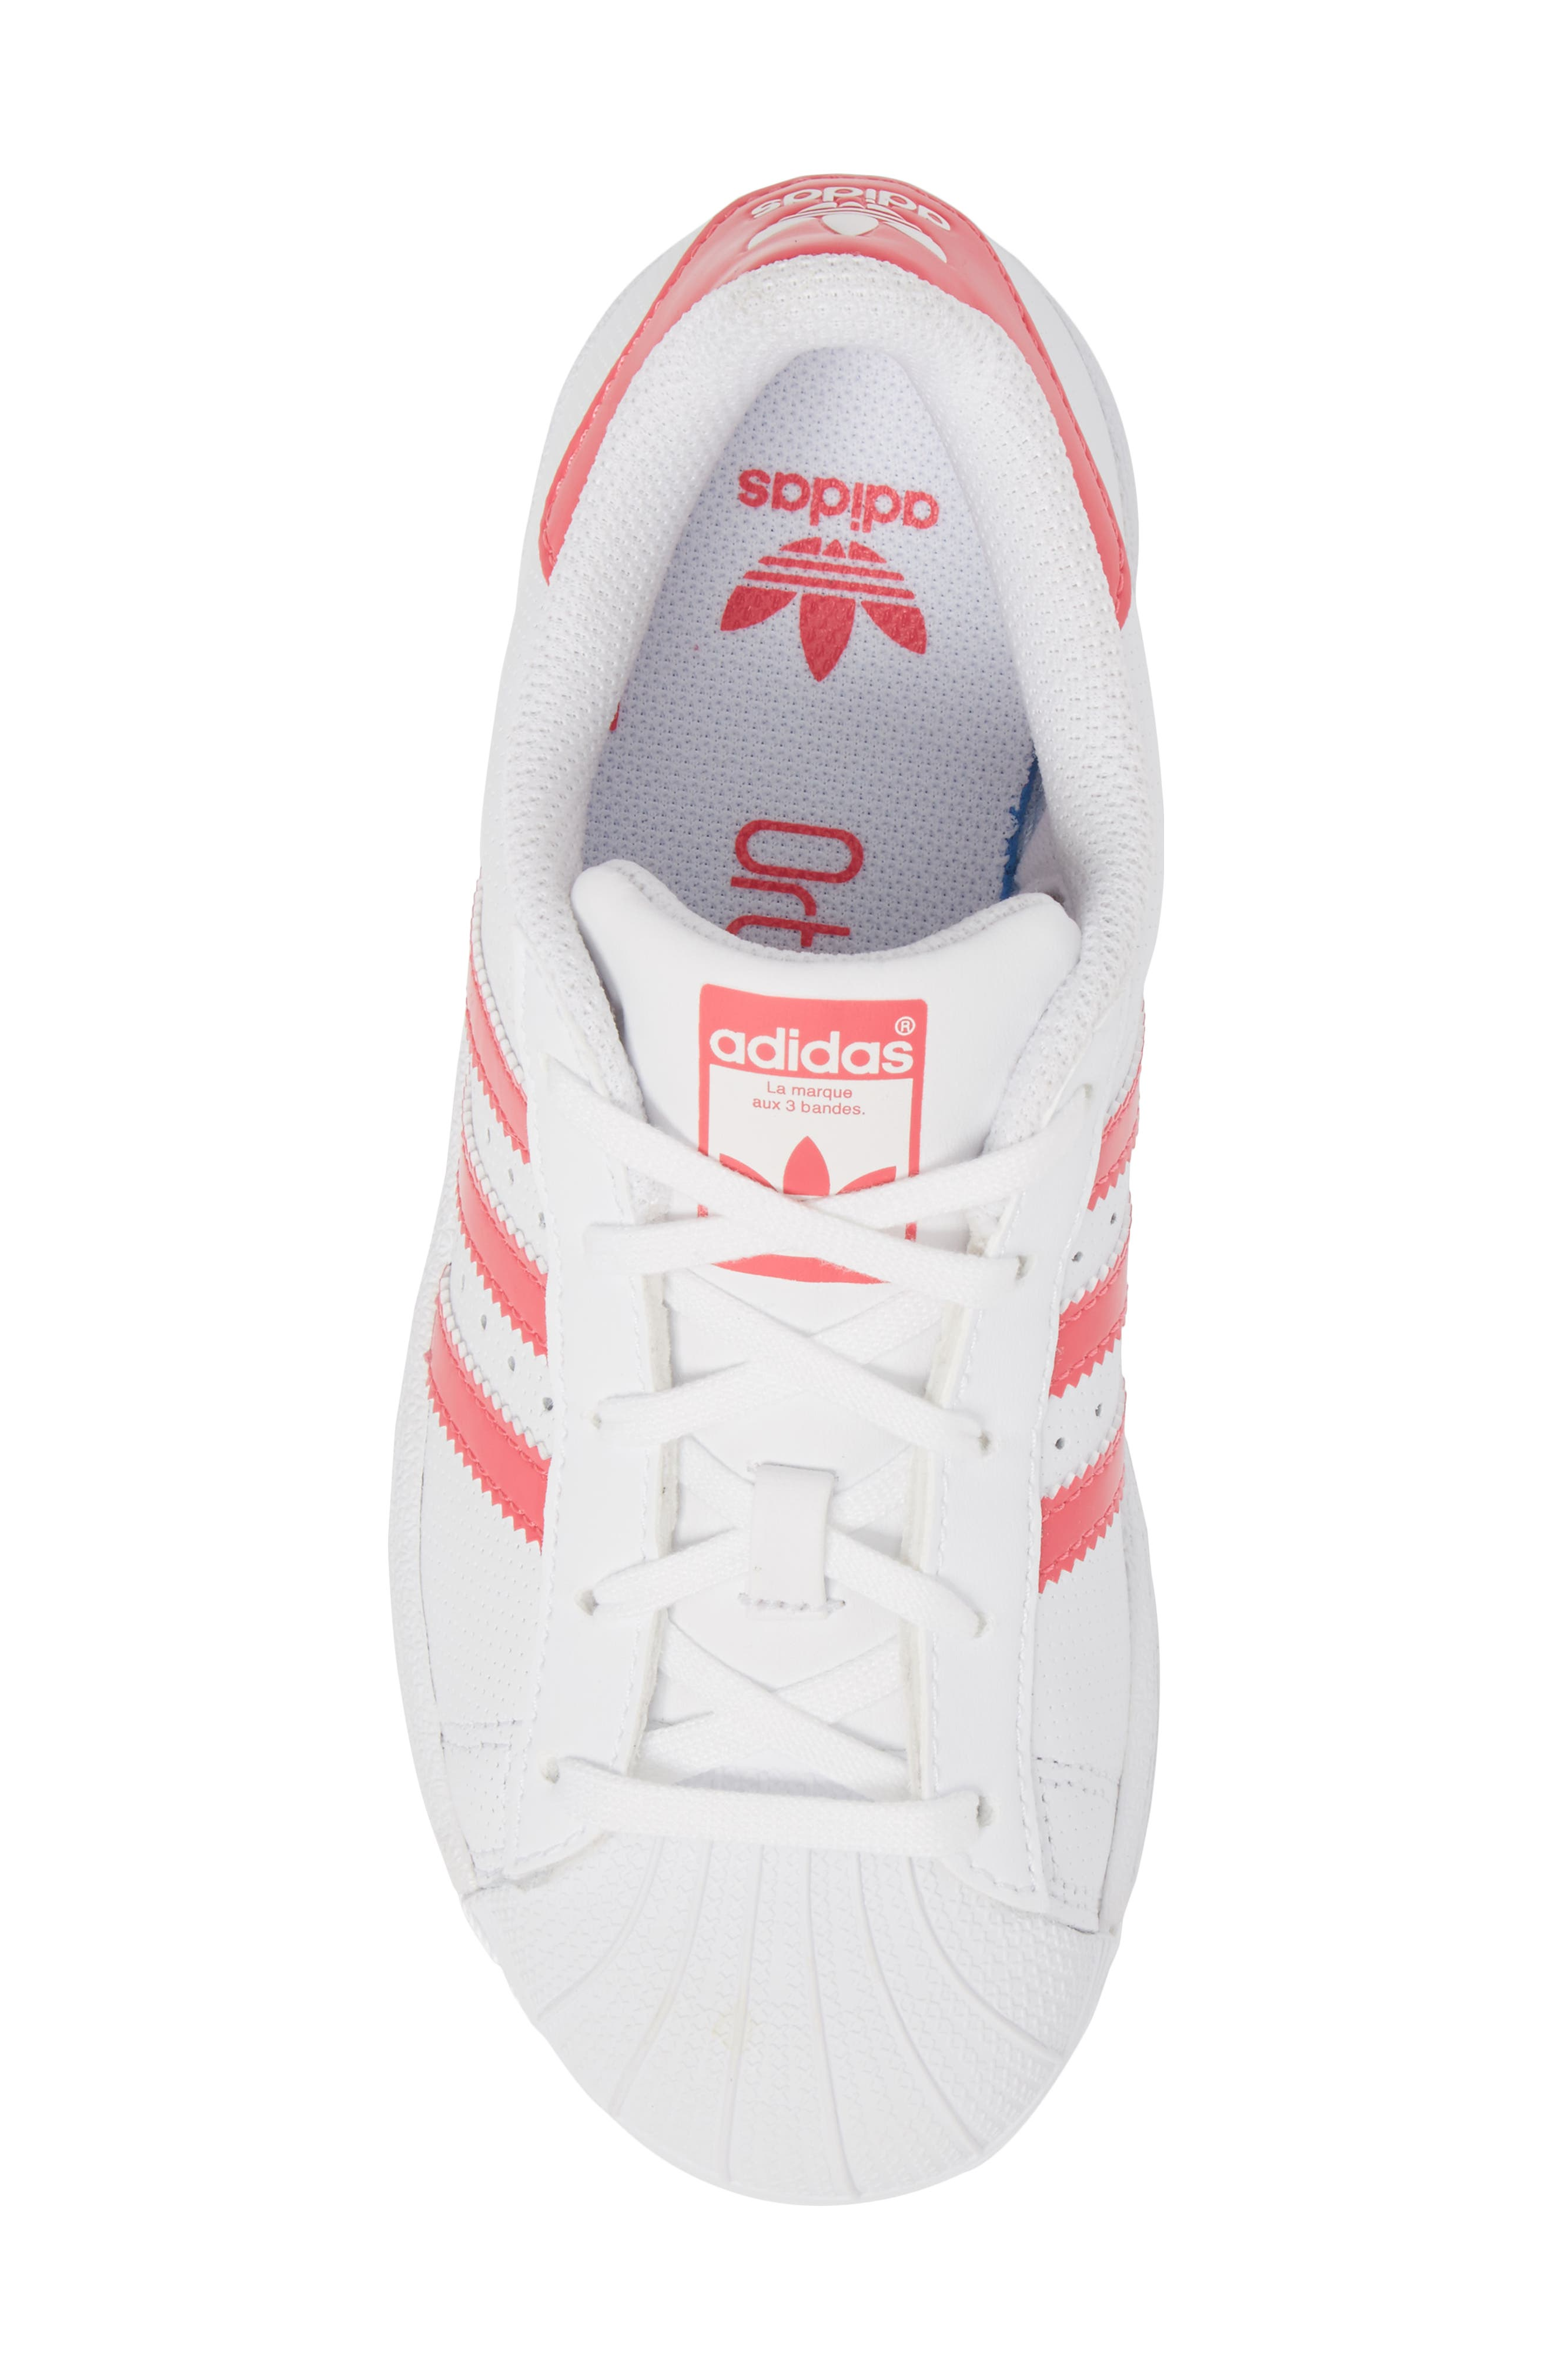 Superstar Perforated Low Top Sneaker,                             Alternate thumbnail 5, color,                             White / Real Pink / White